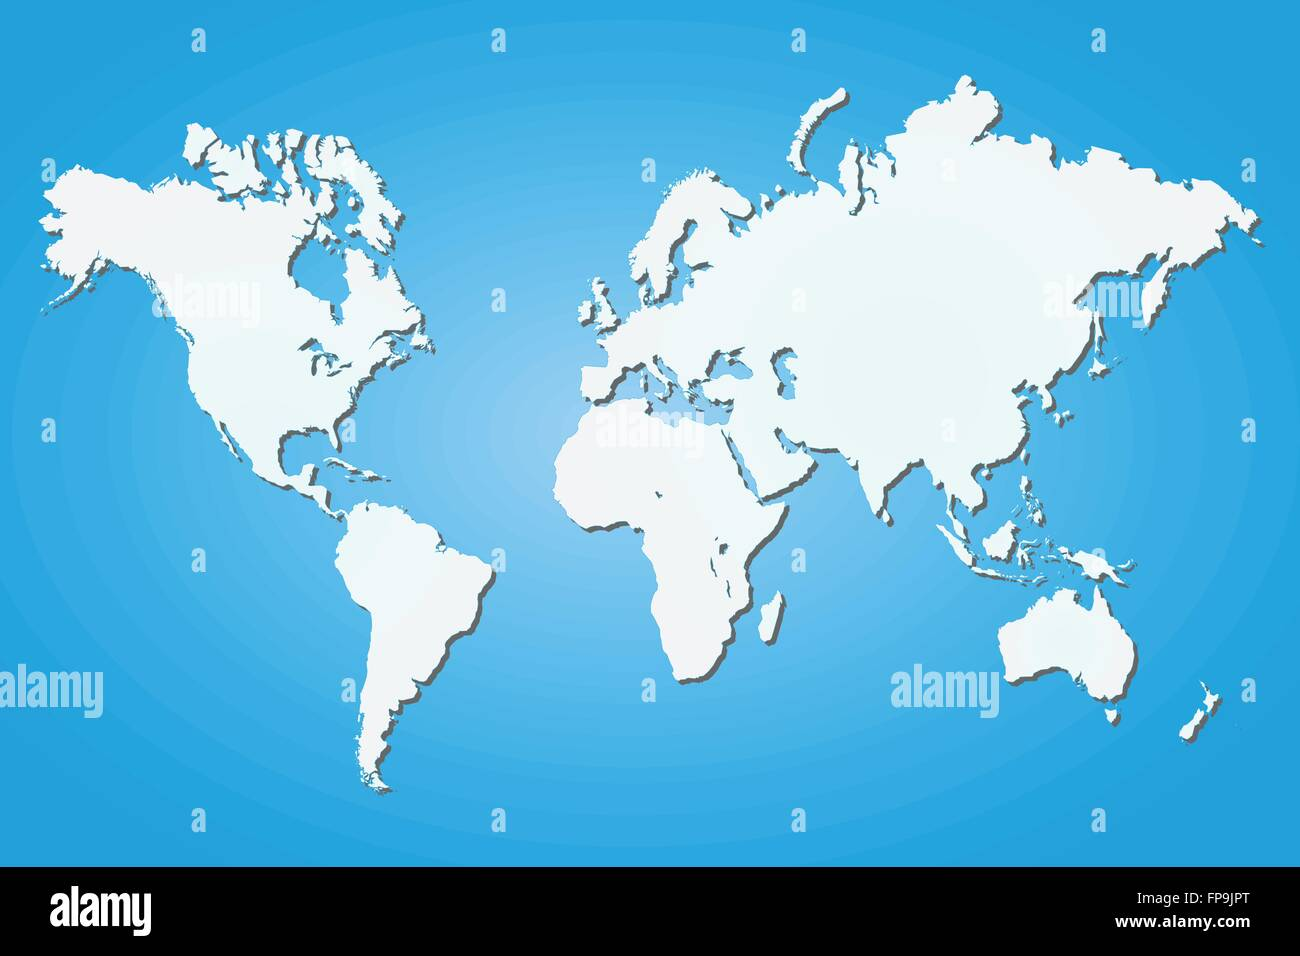 Image of a world map on a colorful blue background stock vector art image of a world map on a colorful blue background gumiabroncs Images